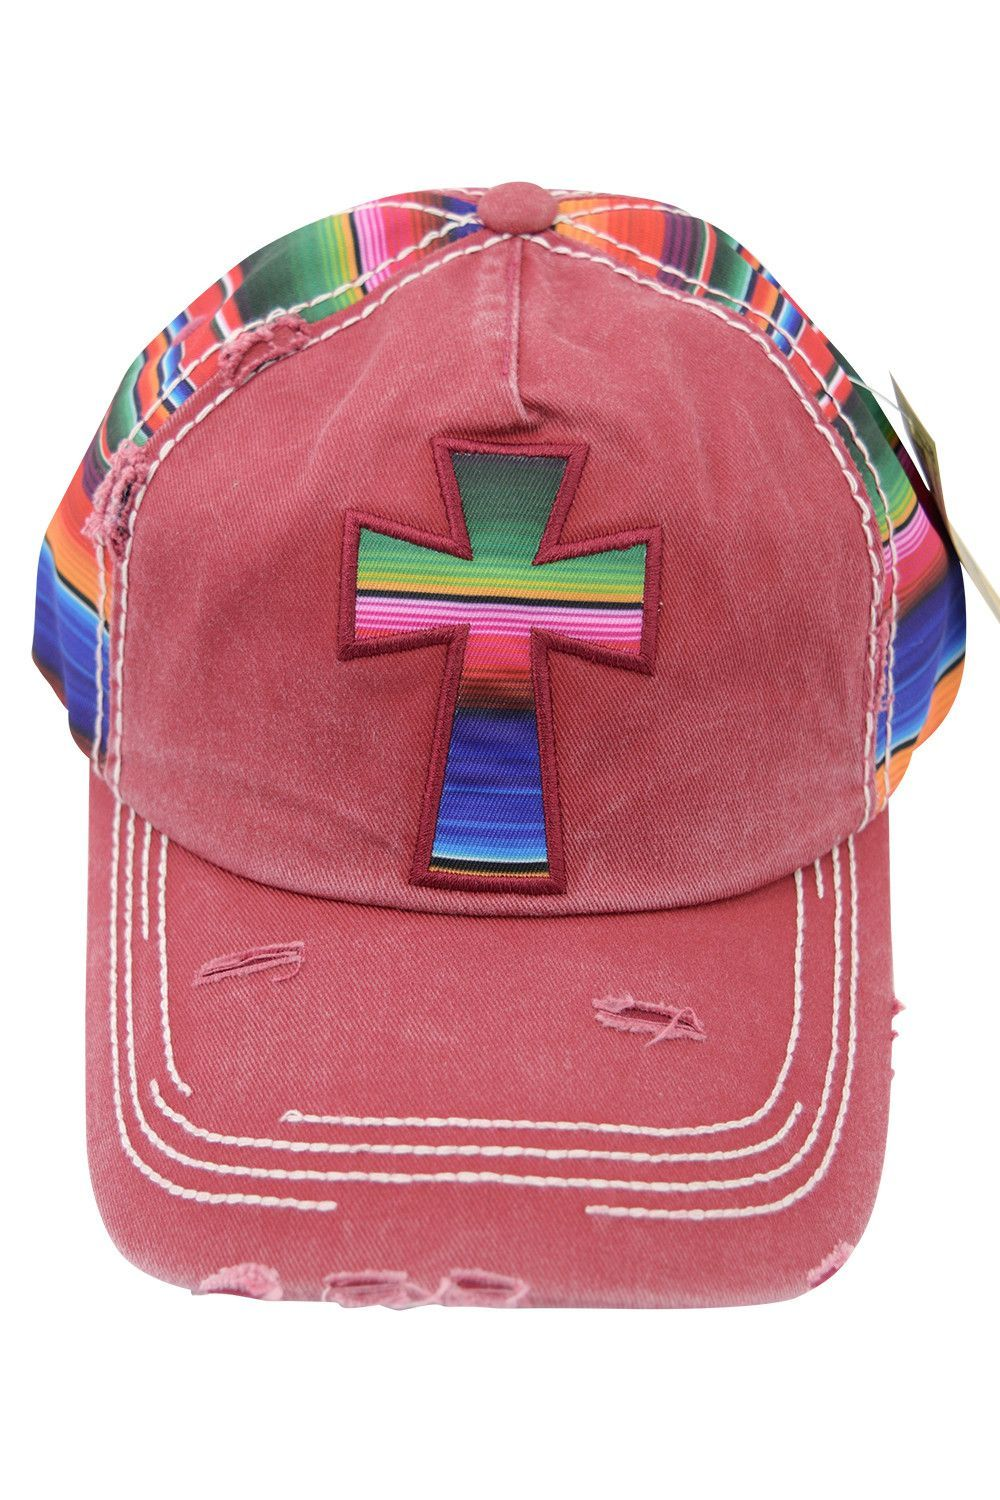 Mexican Serape Cross Distressed Baseball Cap | Hats | Pinterest ...